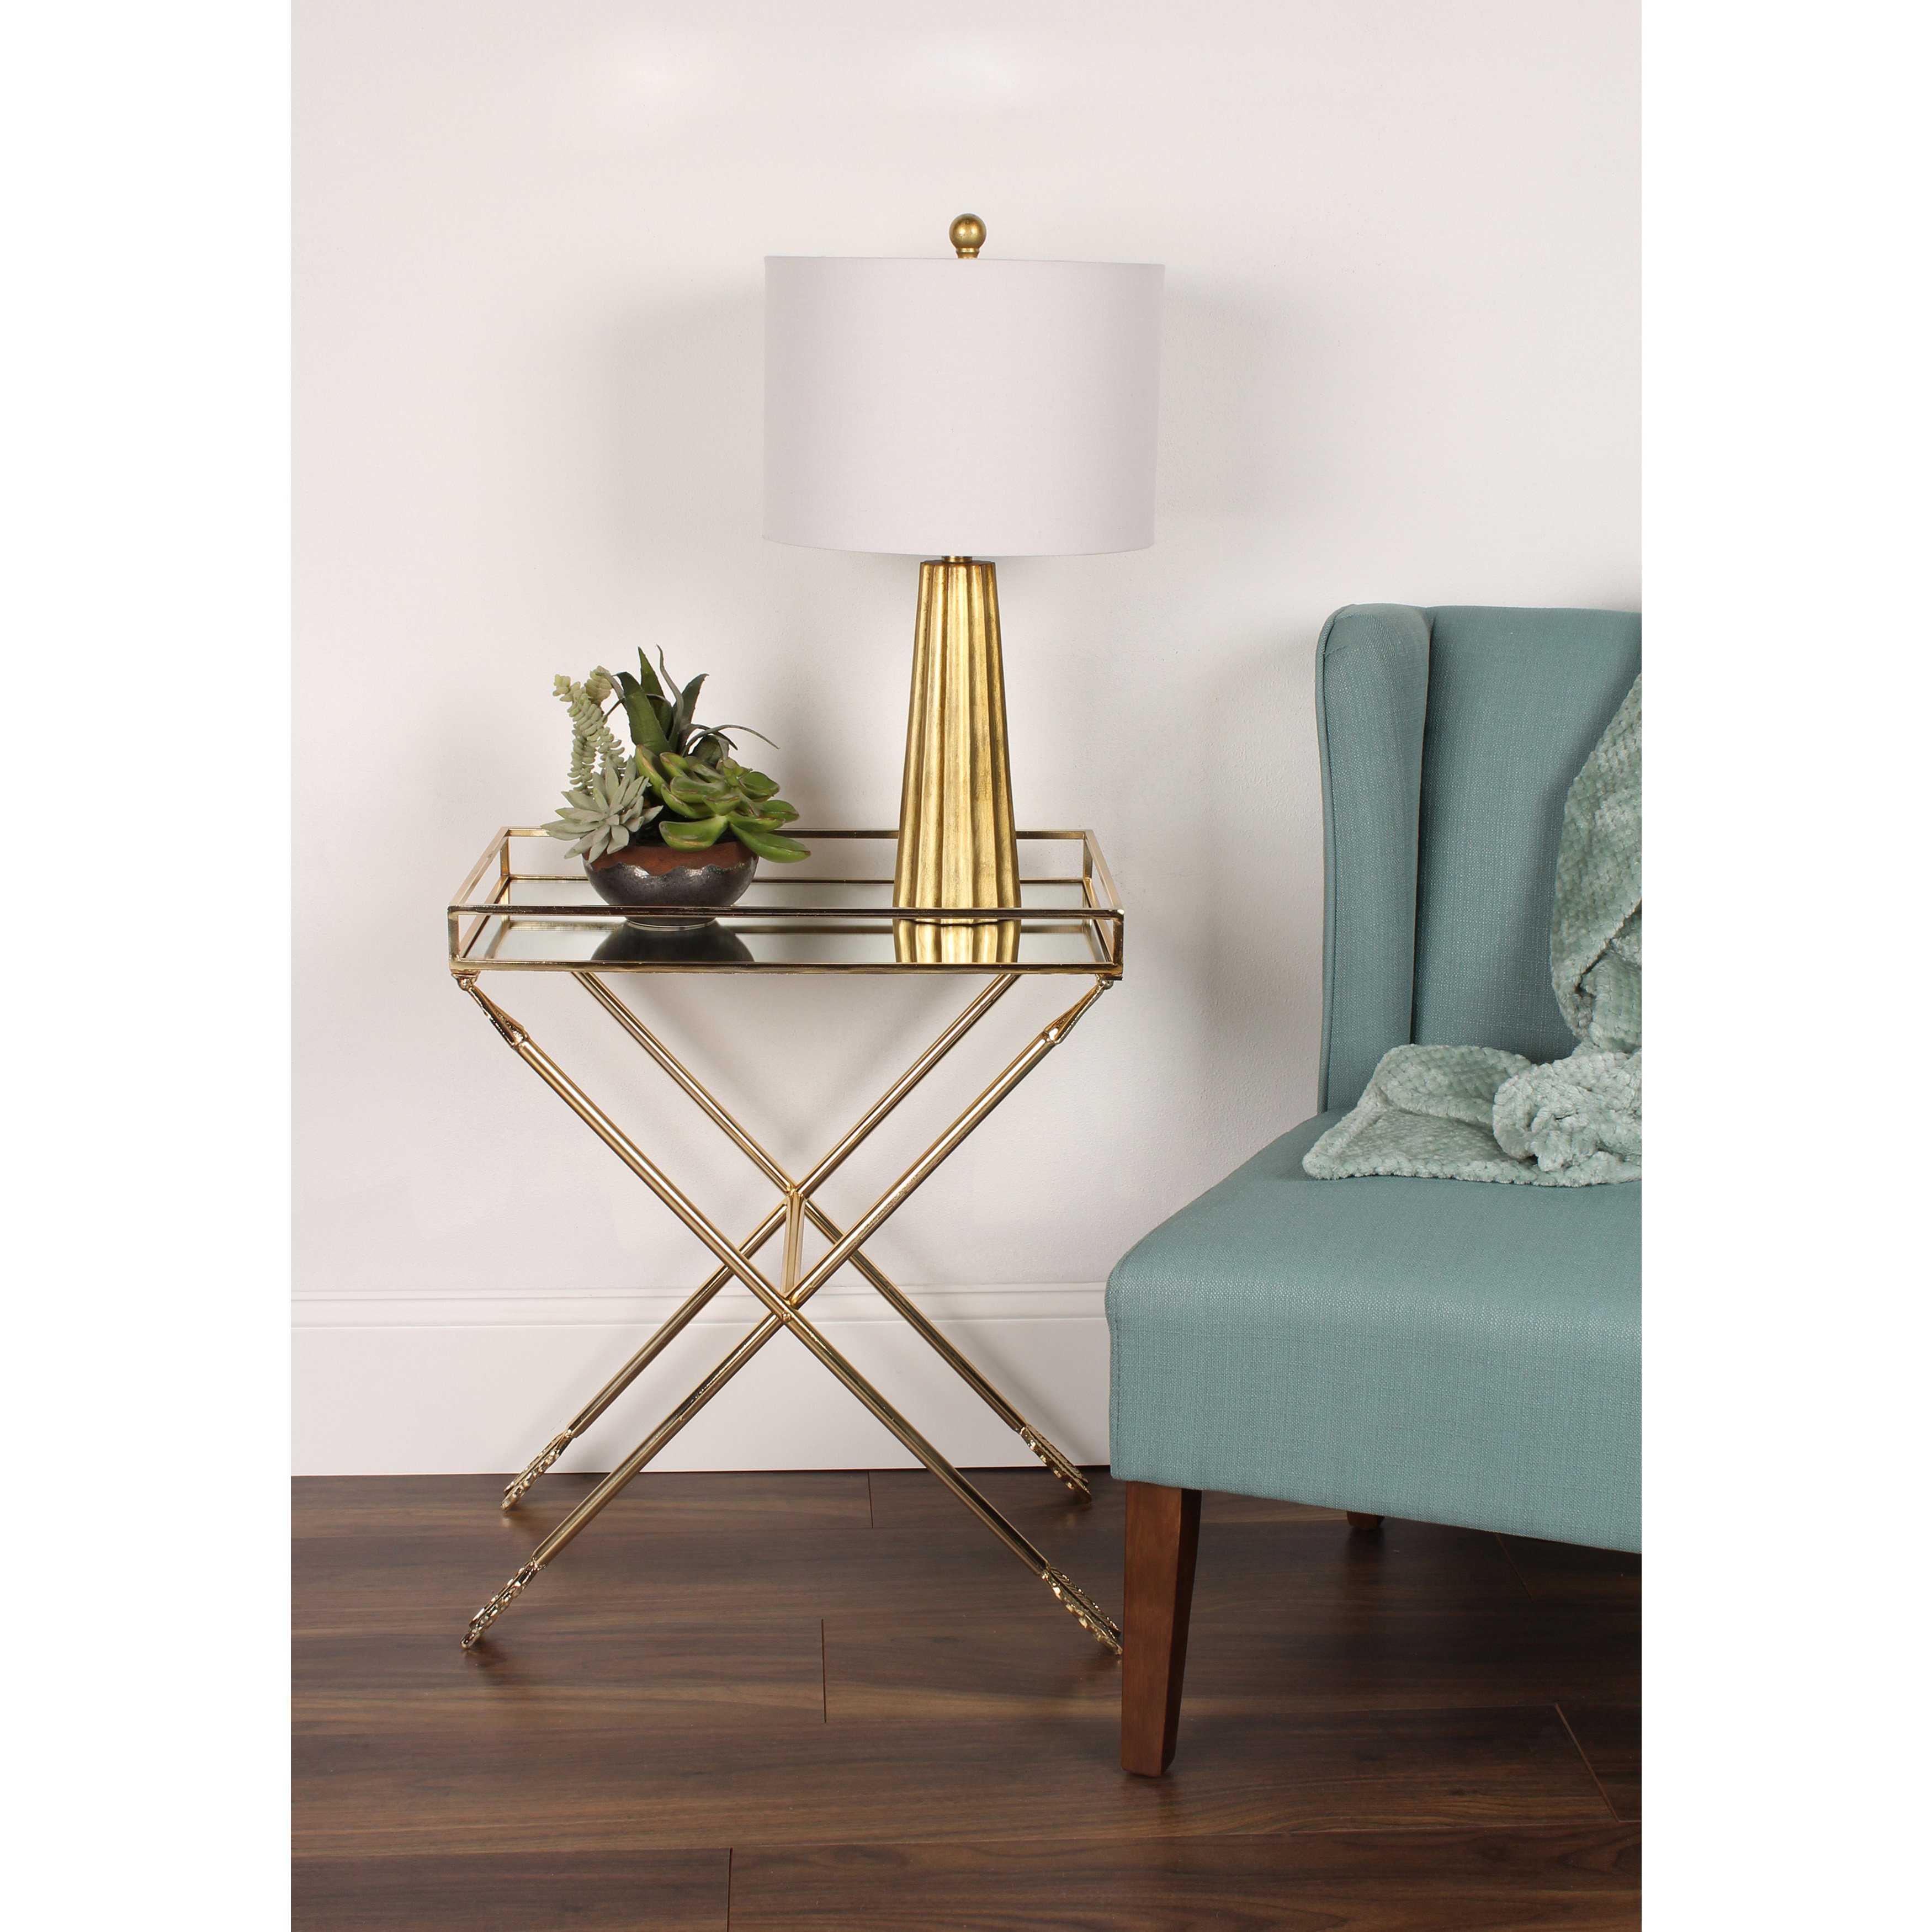 porch den alamo heights viesca arrow metal accent table with tray amp mirrored top ikea bedroom cabinets bedside drawer pier dishes round tile rattan coffee outdoor small black